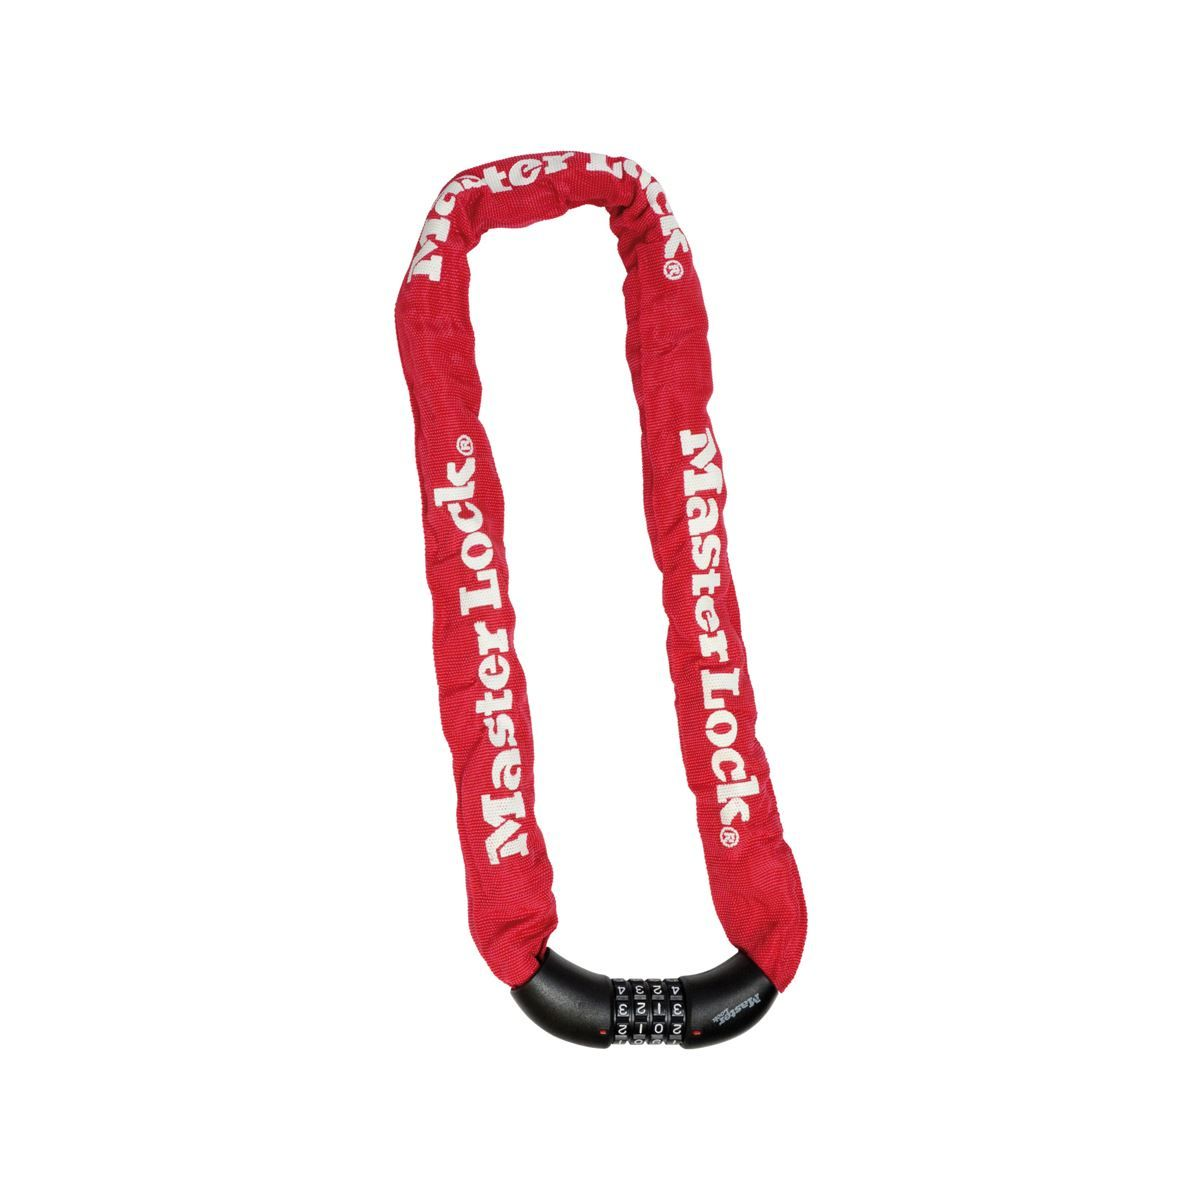 Master Lock 8Mm X 900Mm Chain Lock   Integrated 4 Digit Resettable Combination Lock    Red: Red 900Mm